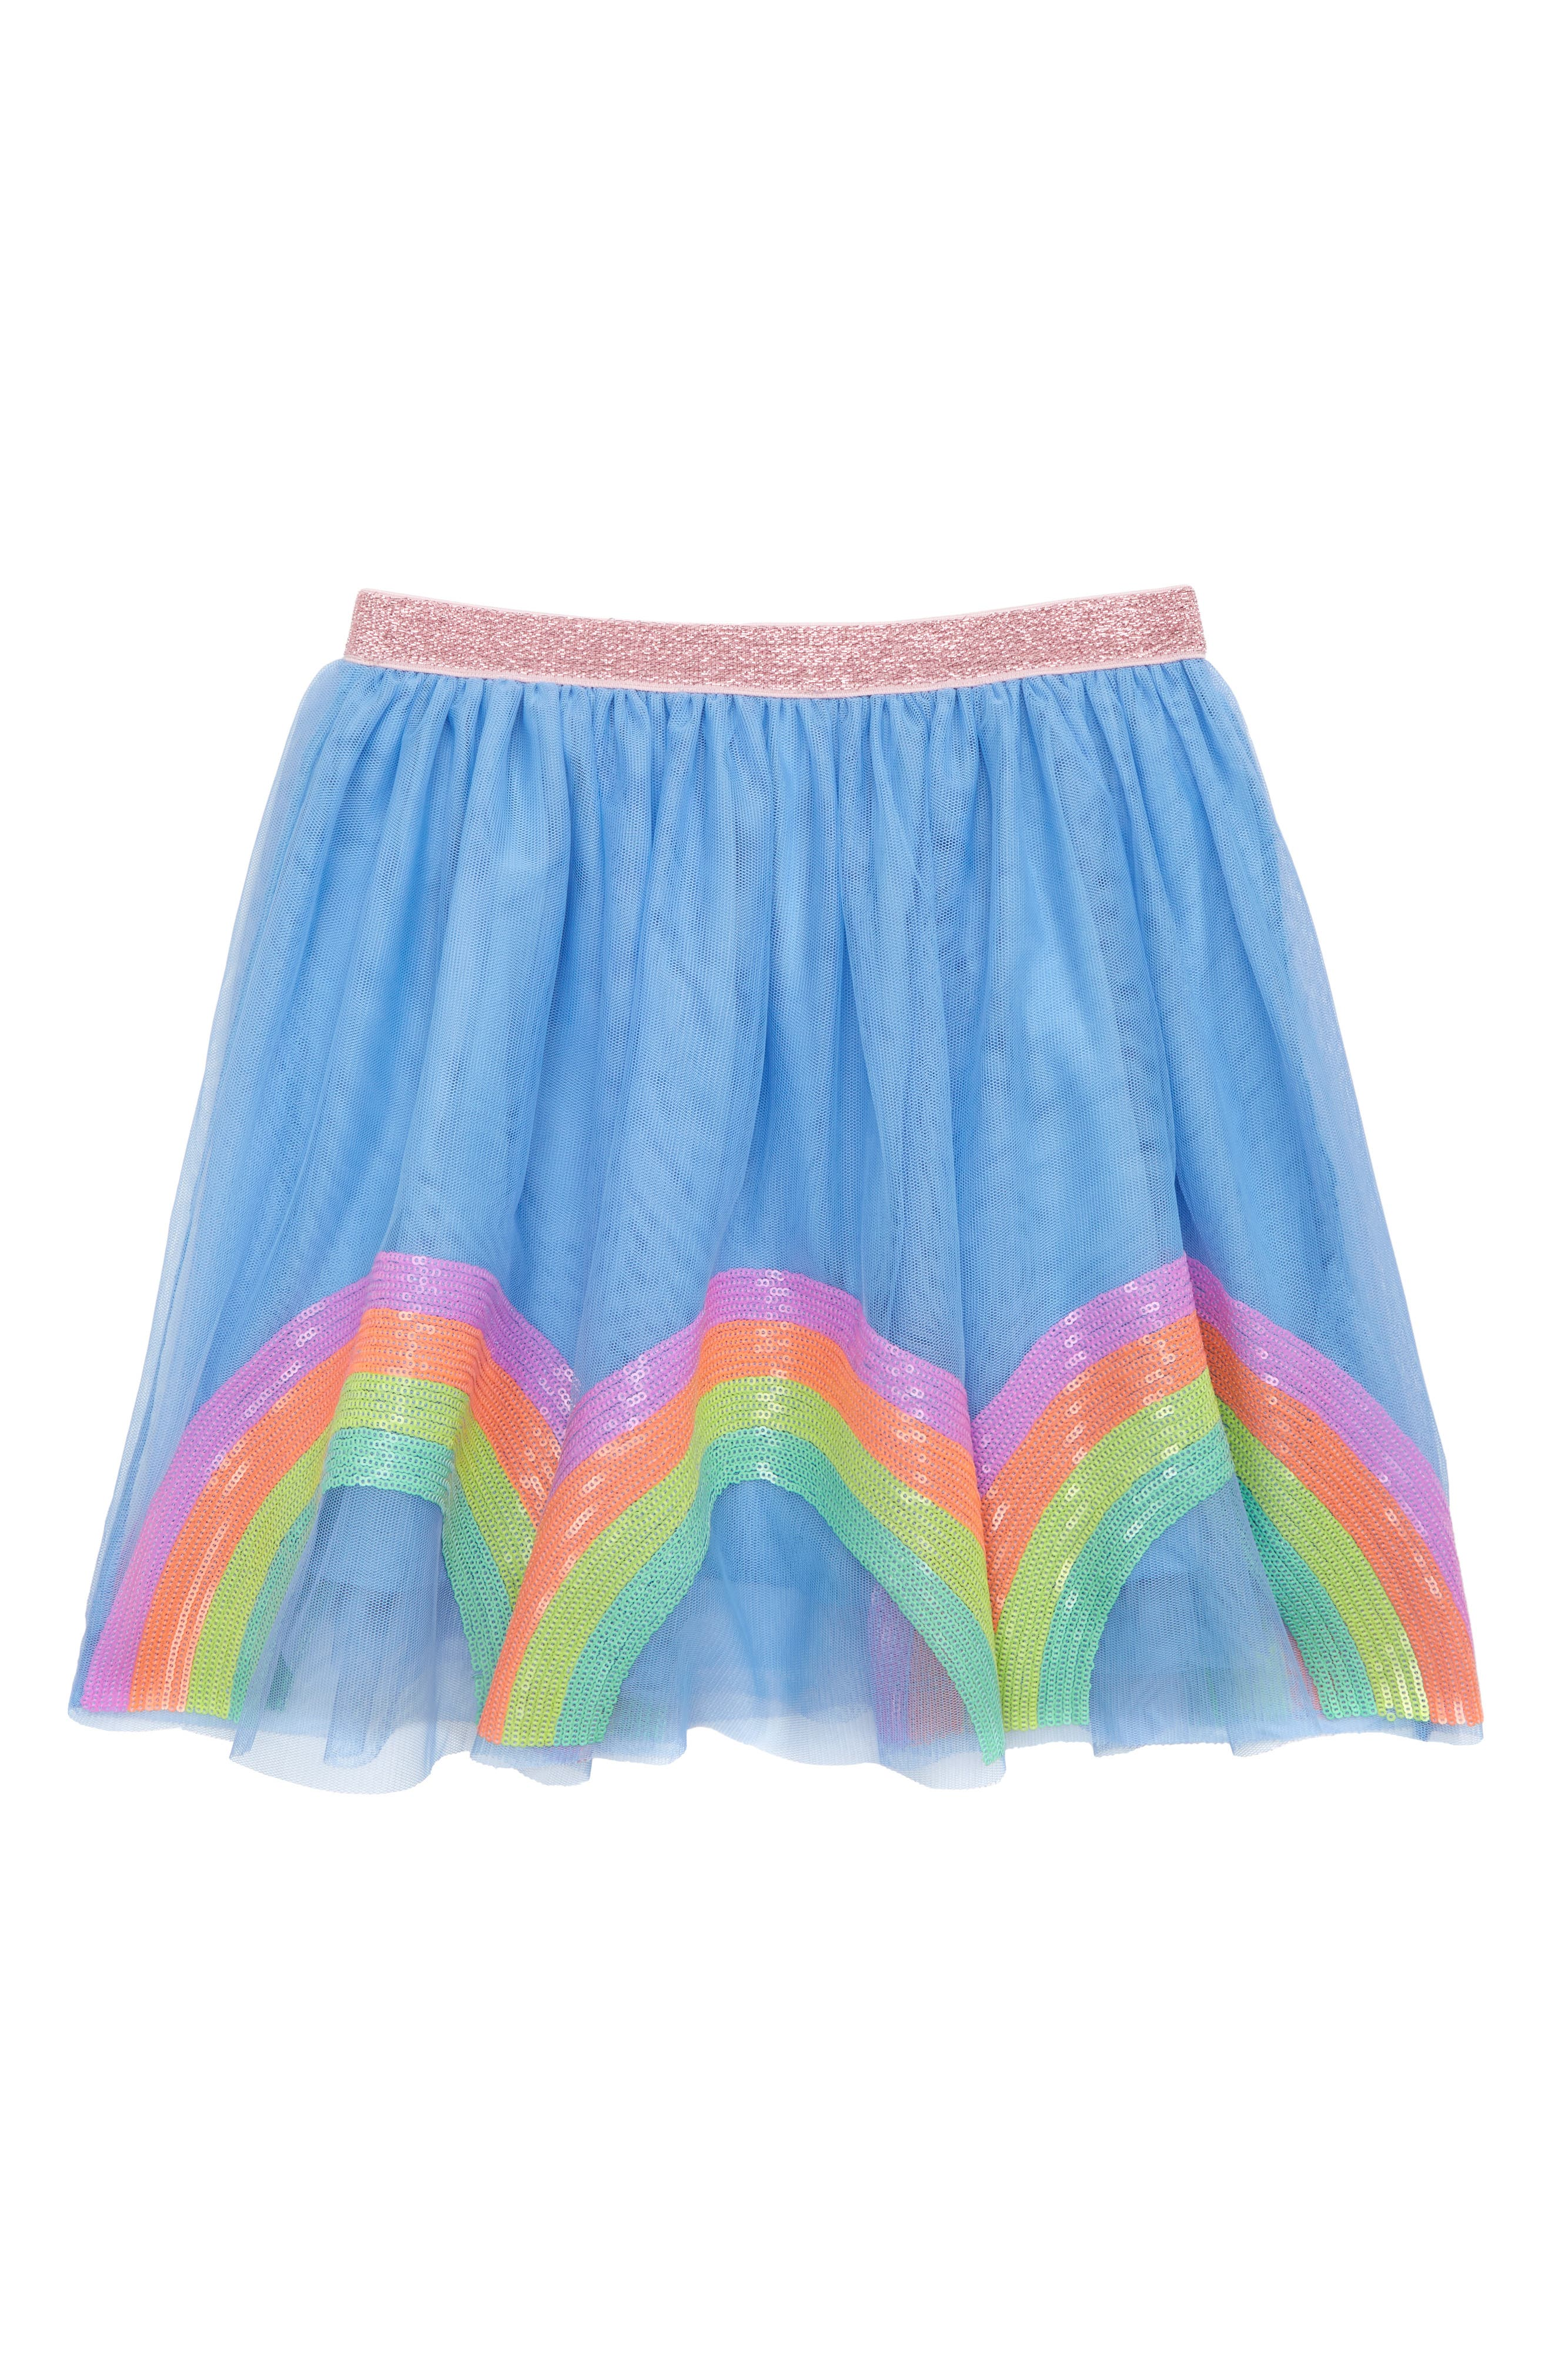 Girls Crewcuts By Jcrew Rainbow Sequin Tulle Skirt Size 10  Blue